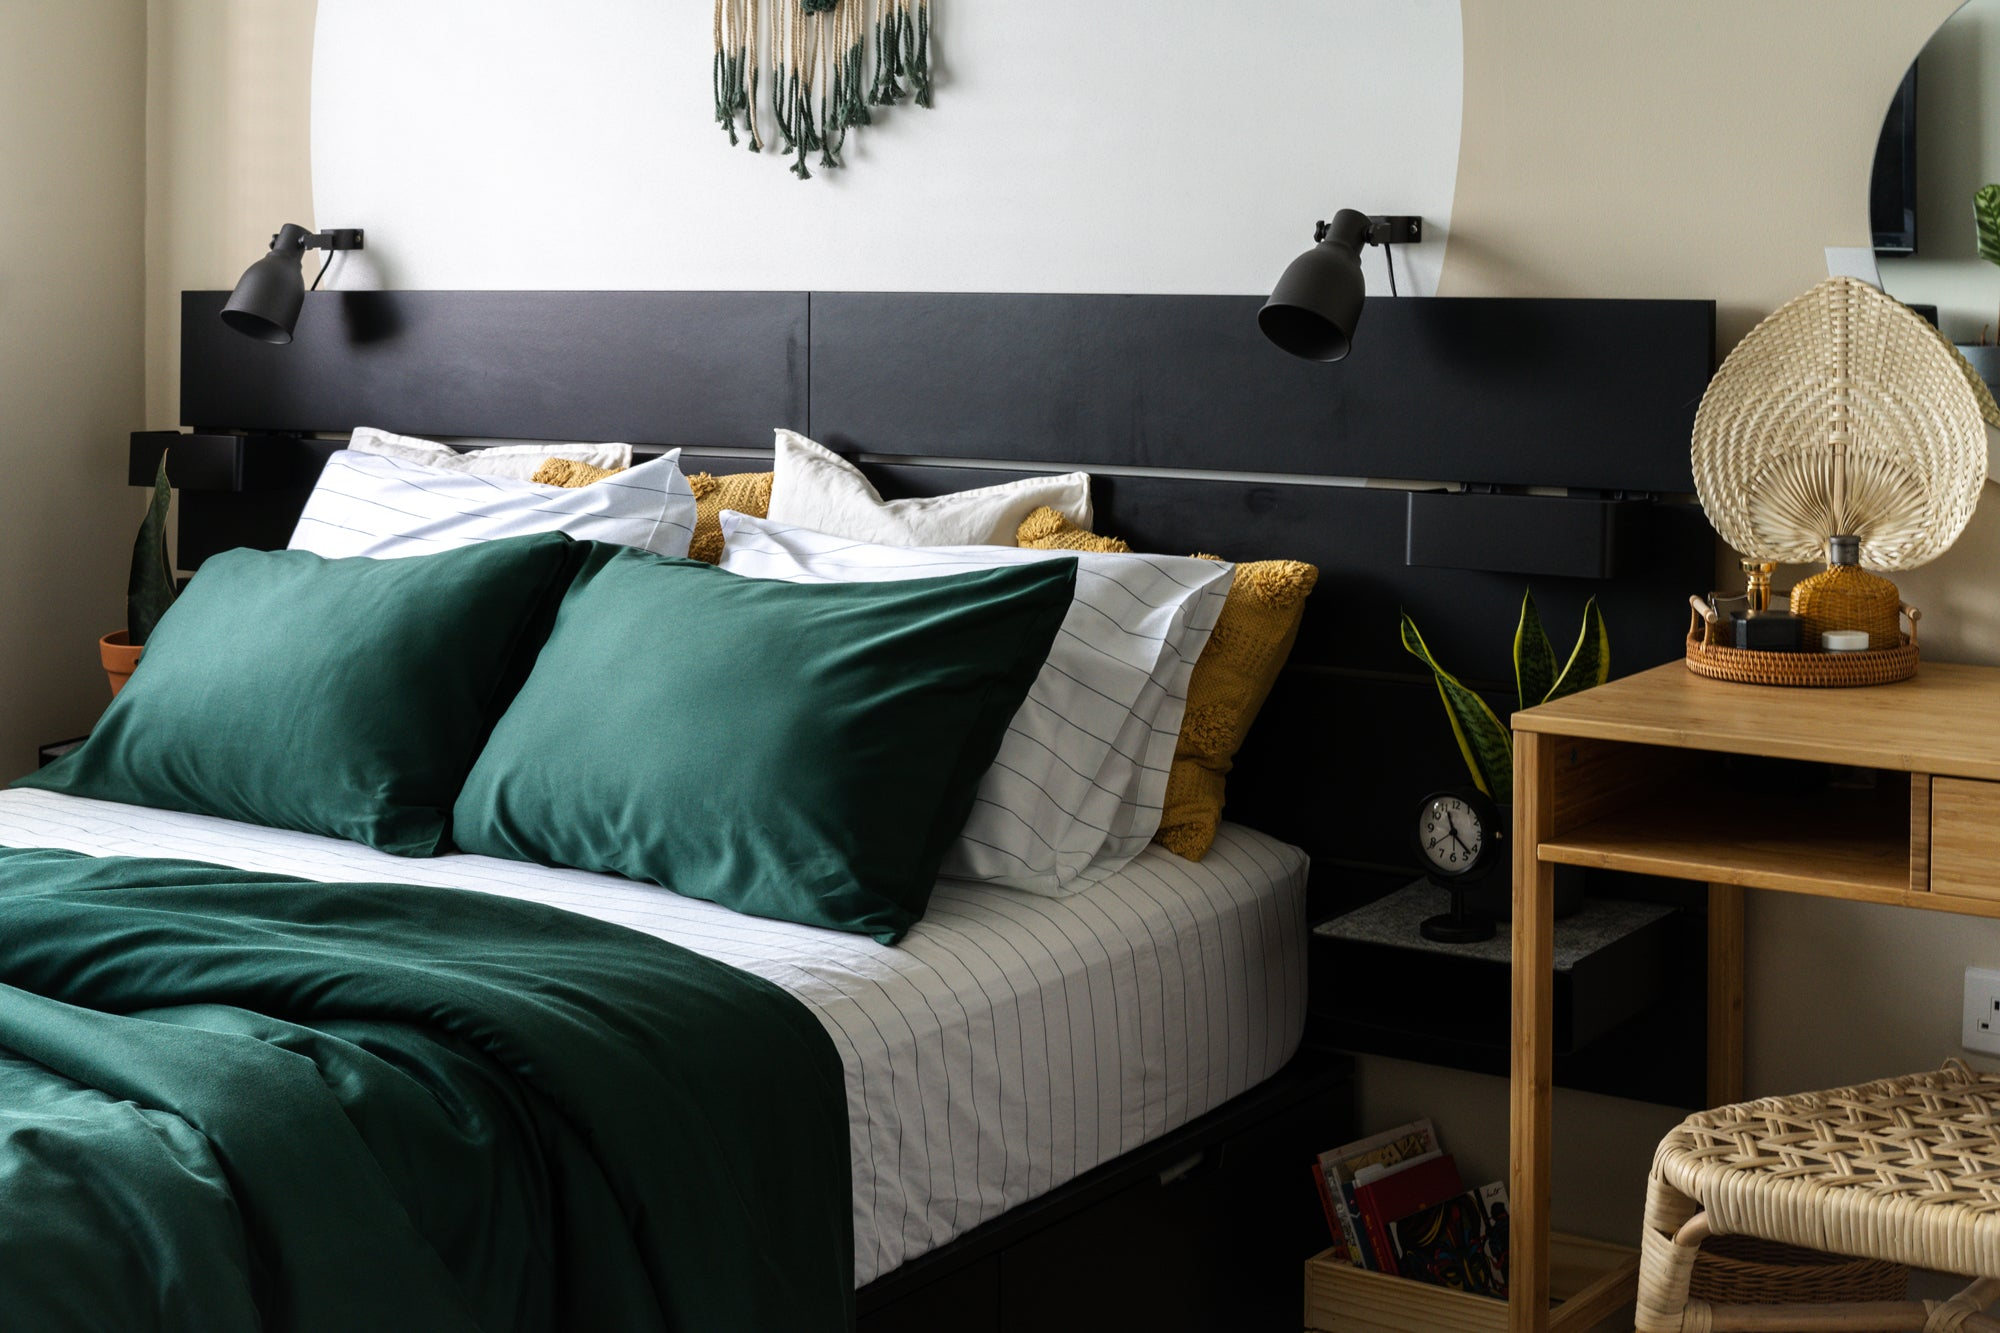 boho modern home with green and striped bedsheets